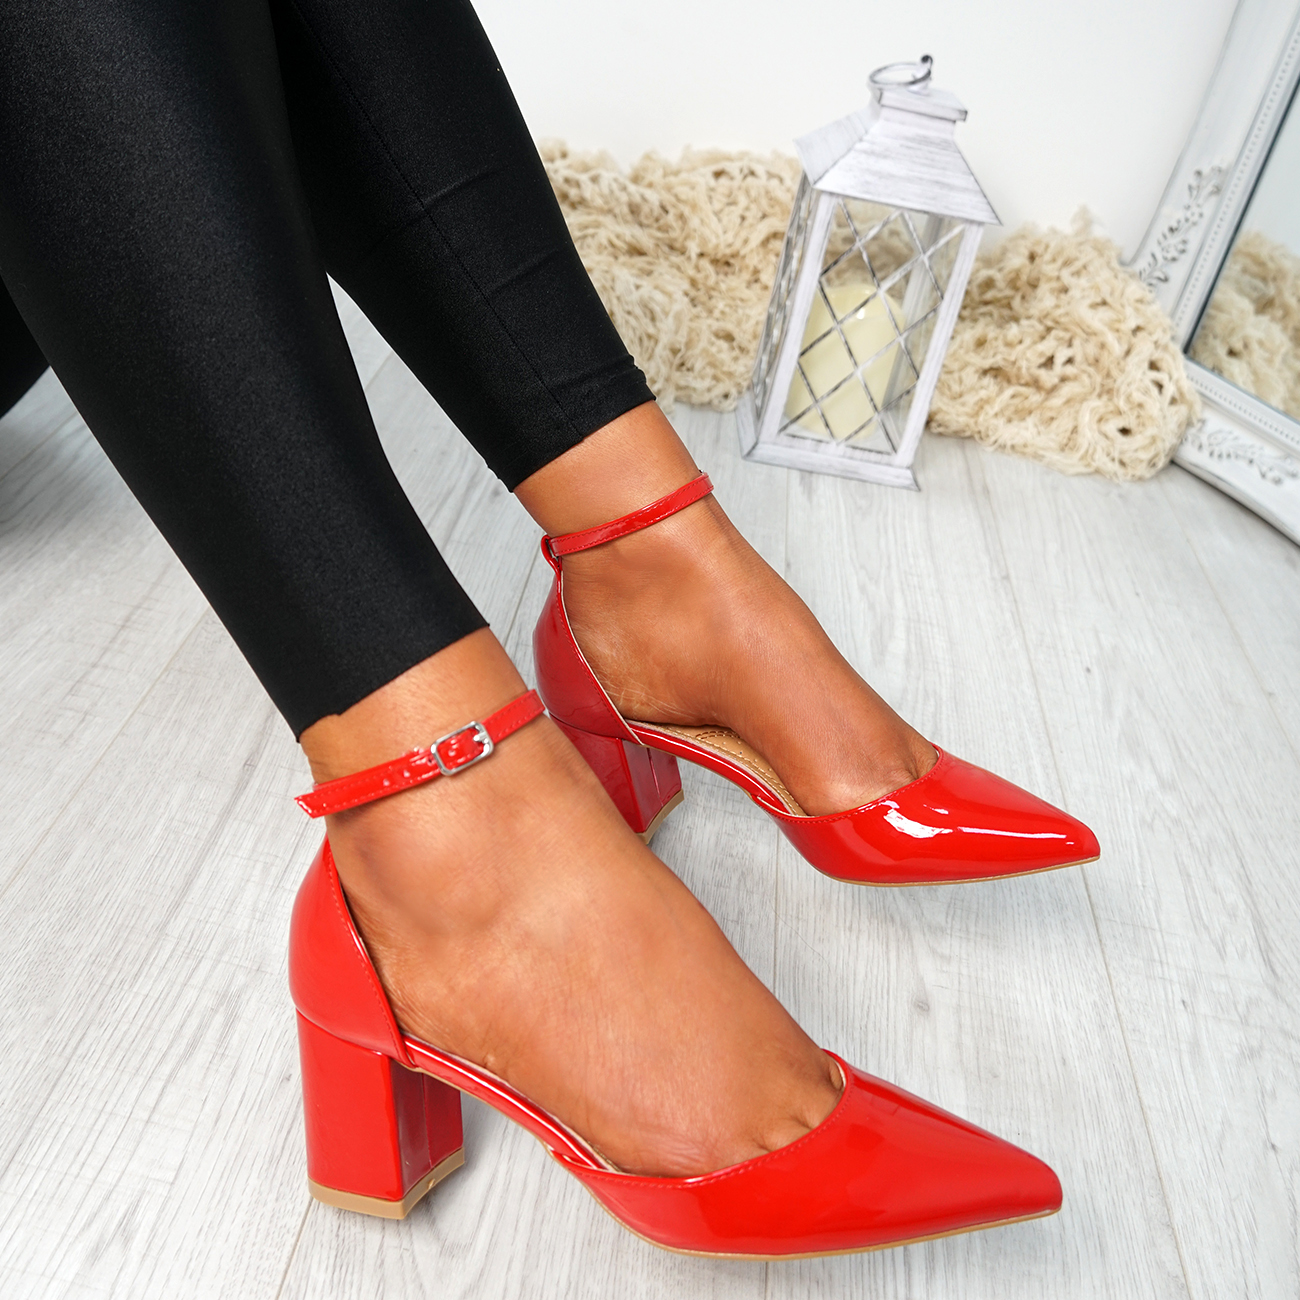 WOMENS-LADIES-ANKLE-STRAP-BLOCK-HEEL-PUMPS-POINTED-TOE-WORK-PARTY-SHOES-SIZE thumbnail 20